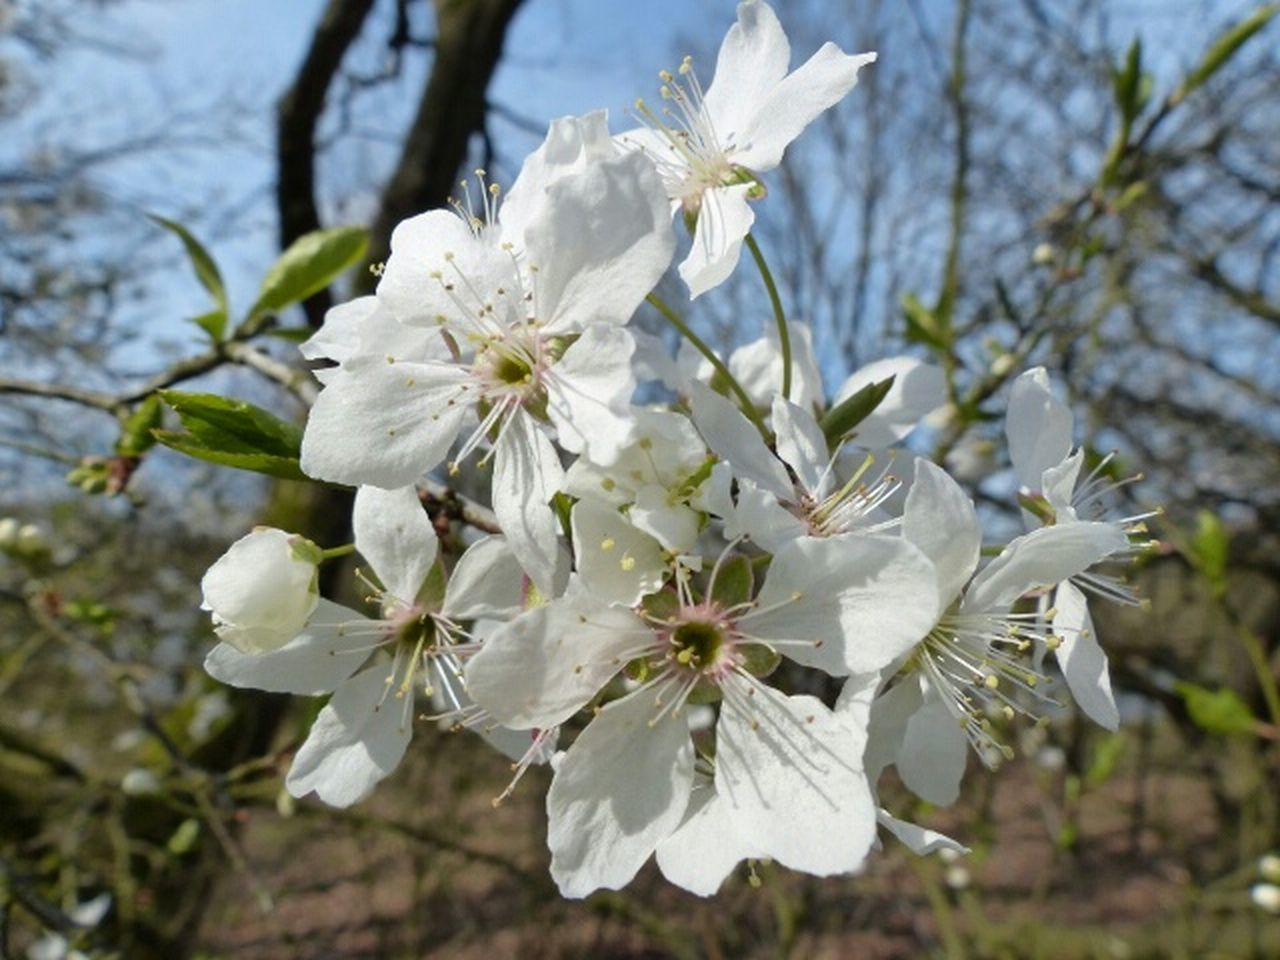 flower, fragility, blossom, white color, tree, apple blossom, growth, apple tree, springtime, beauty in nature, orchard, nature, freshness, petal, branch, botany, twig, stamen, day, no people, flower head, focus on foreground, low angle view, close-up, outdoors, blooming, plum blossom, sky